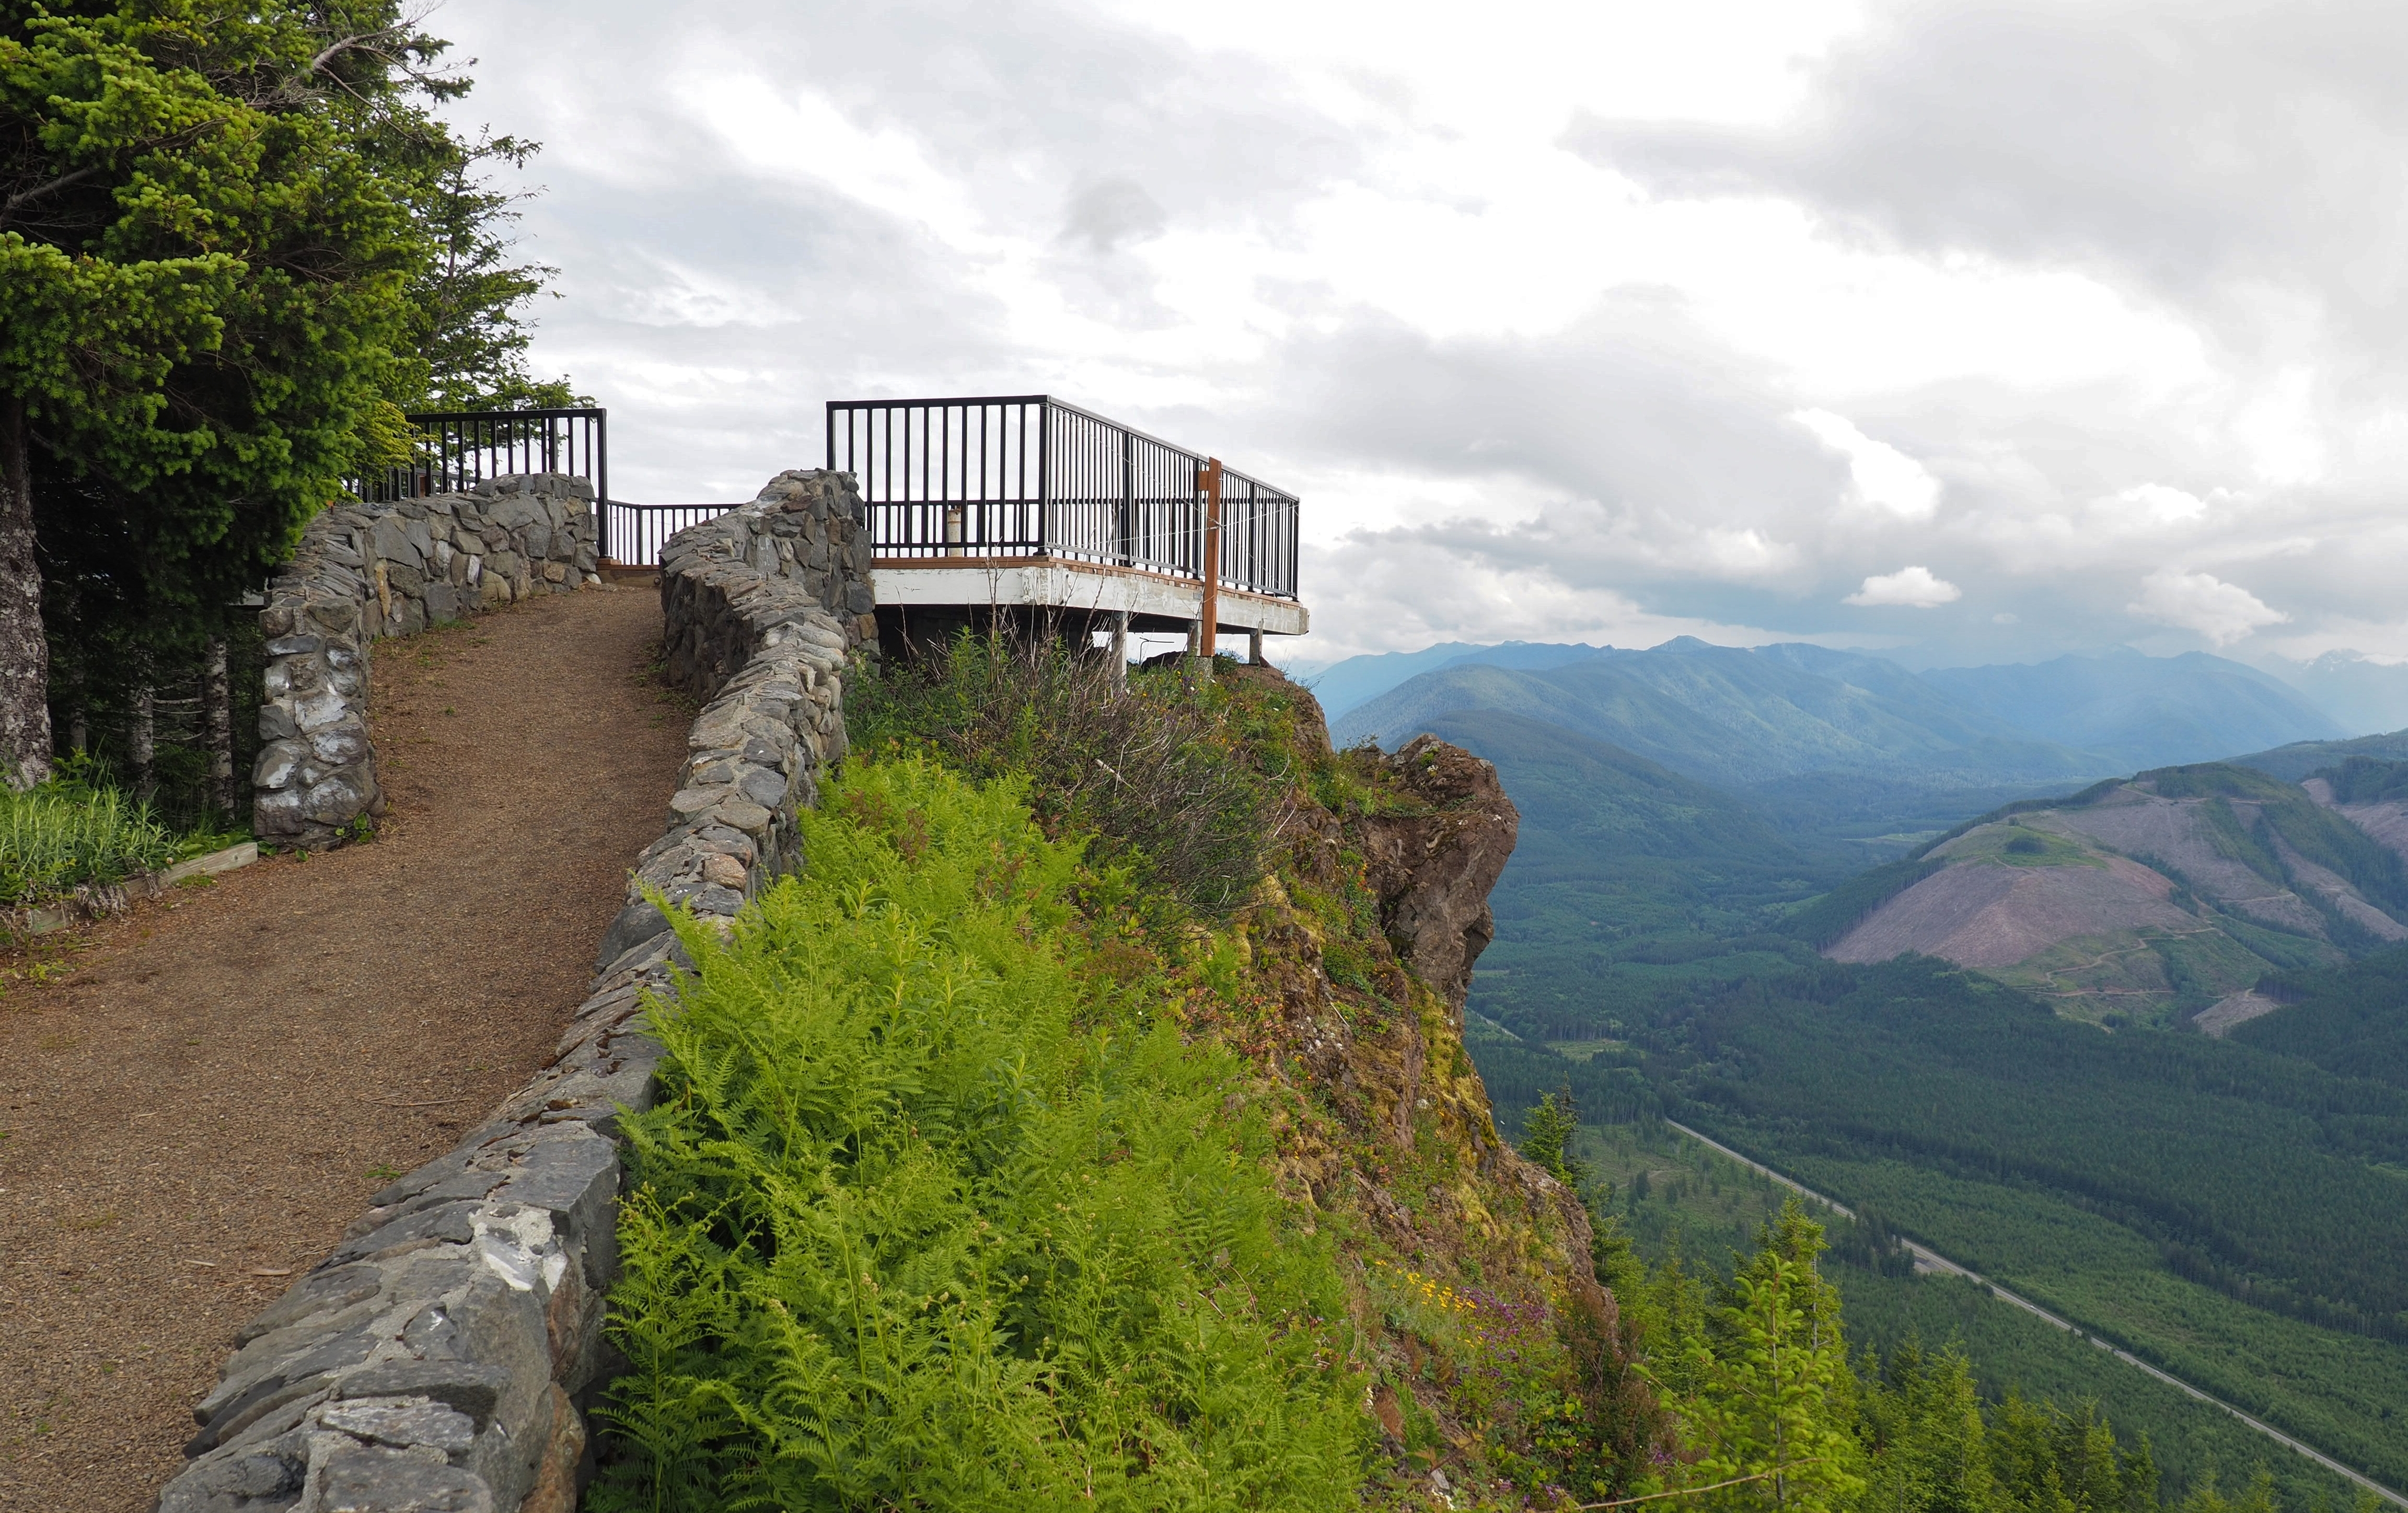 Kloshe Nanitch's old fire lookout is gone, but its foundation now supports a sturdy viewing platform that commands a view of the Sol Duc River Valley below. Kloshe Nanitch Trail, June 17, 2016.